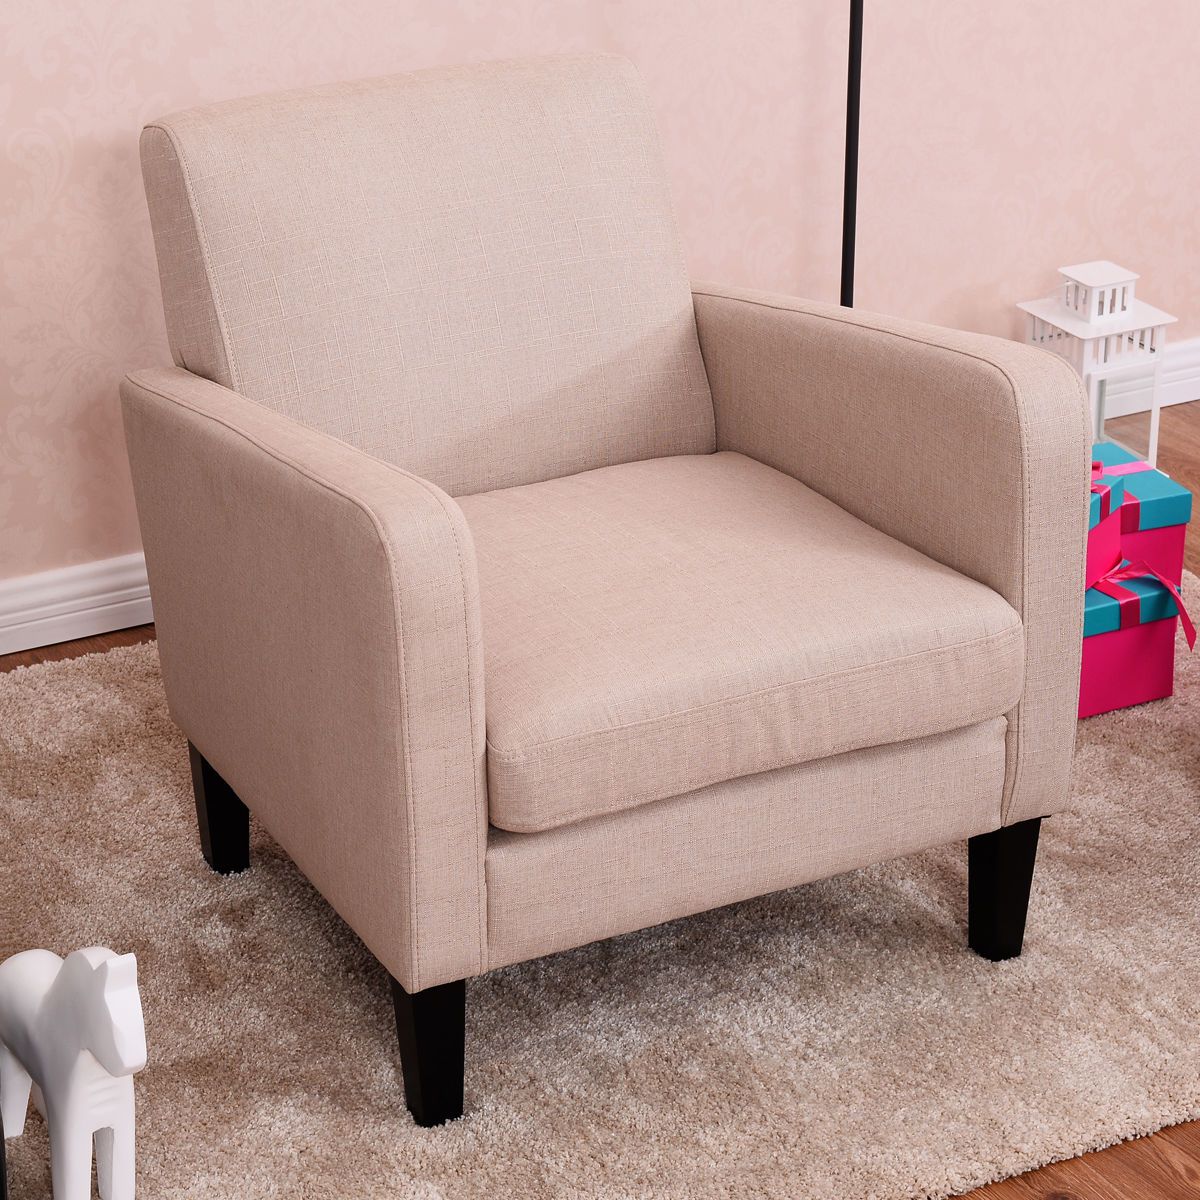 Giantex Leisure Arm Chair Accent Single Sofa Fabric Upholstered Living Room Modern Chairs Sofa Home Furniture HW53954BE цена 2017